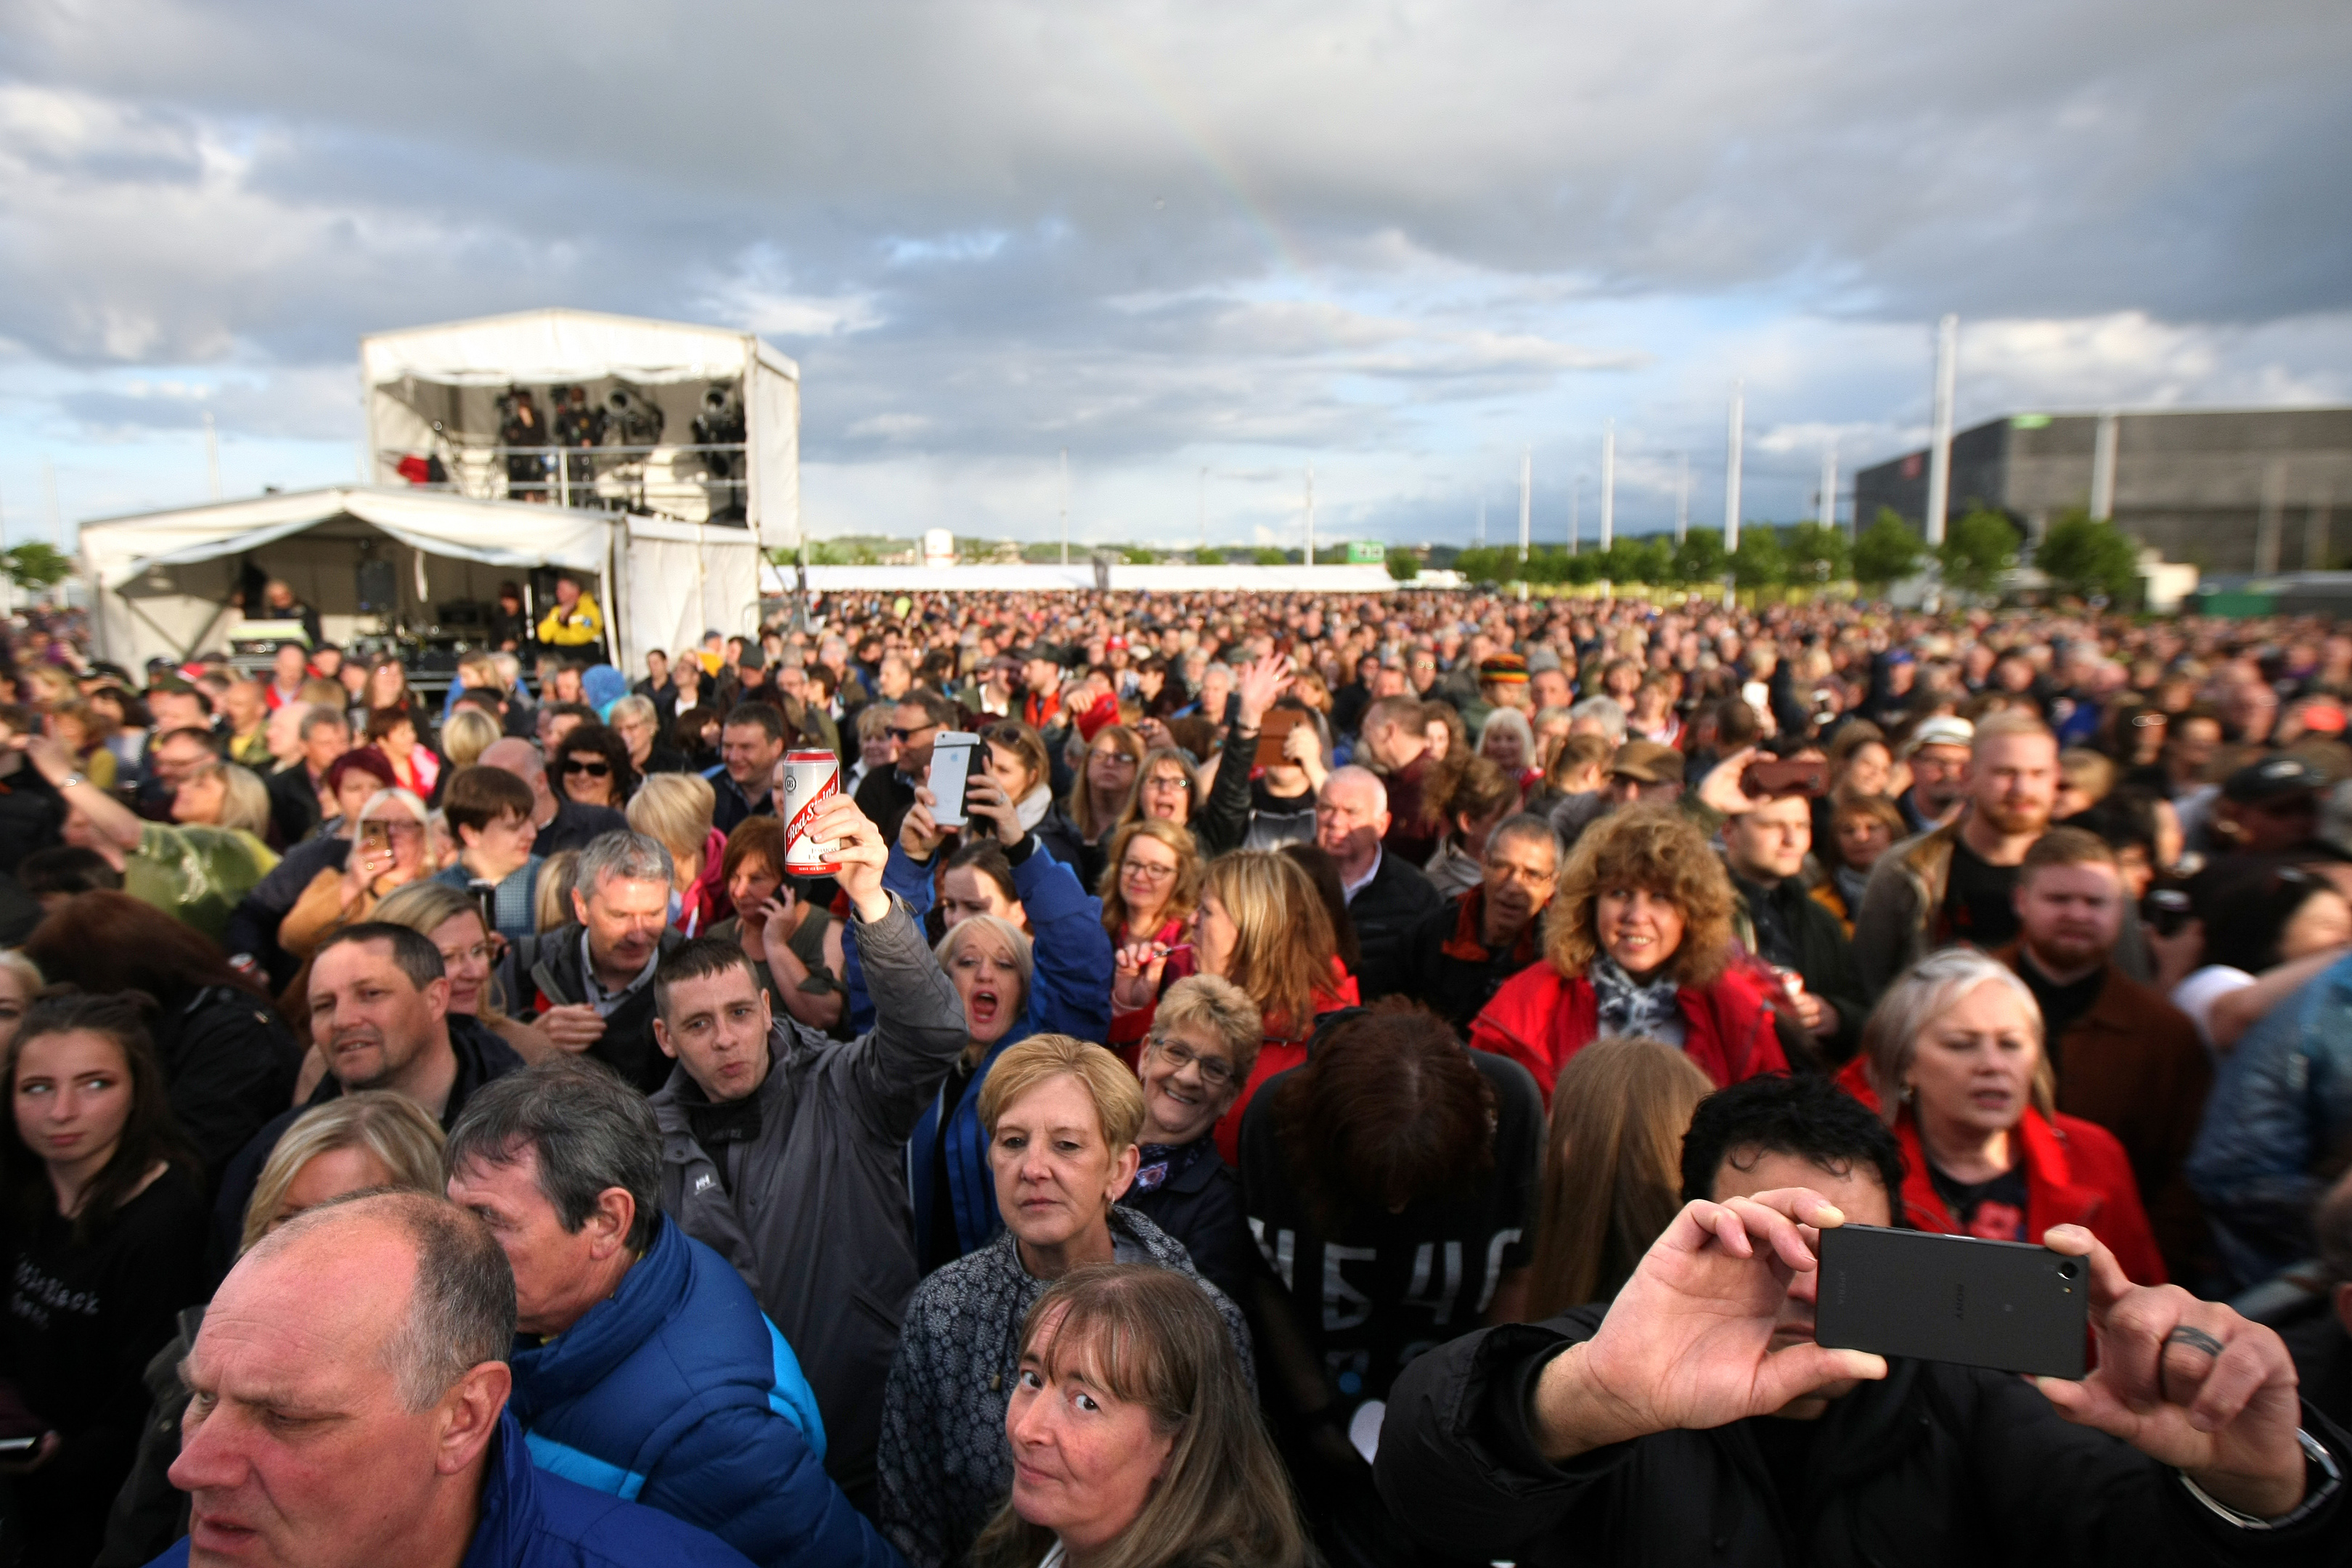 Slessor Gardens welcomed its first big concert audience for Level 42 and UB40 on May 20.